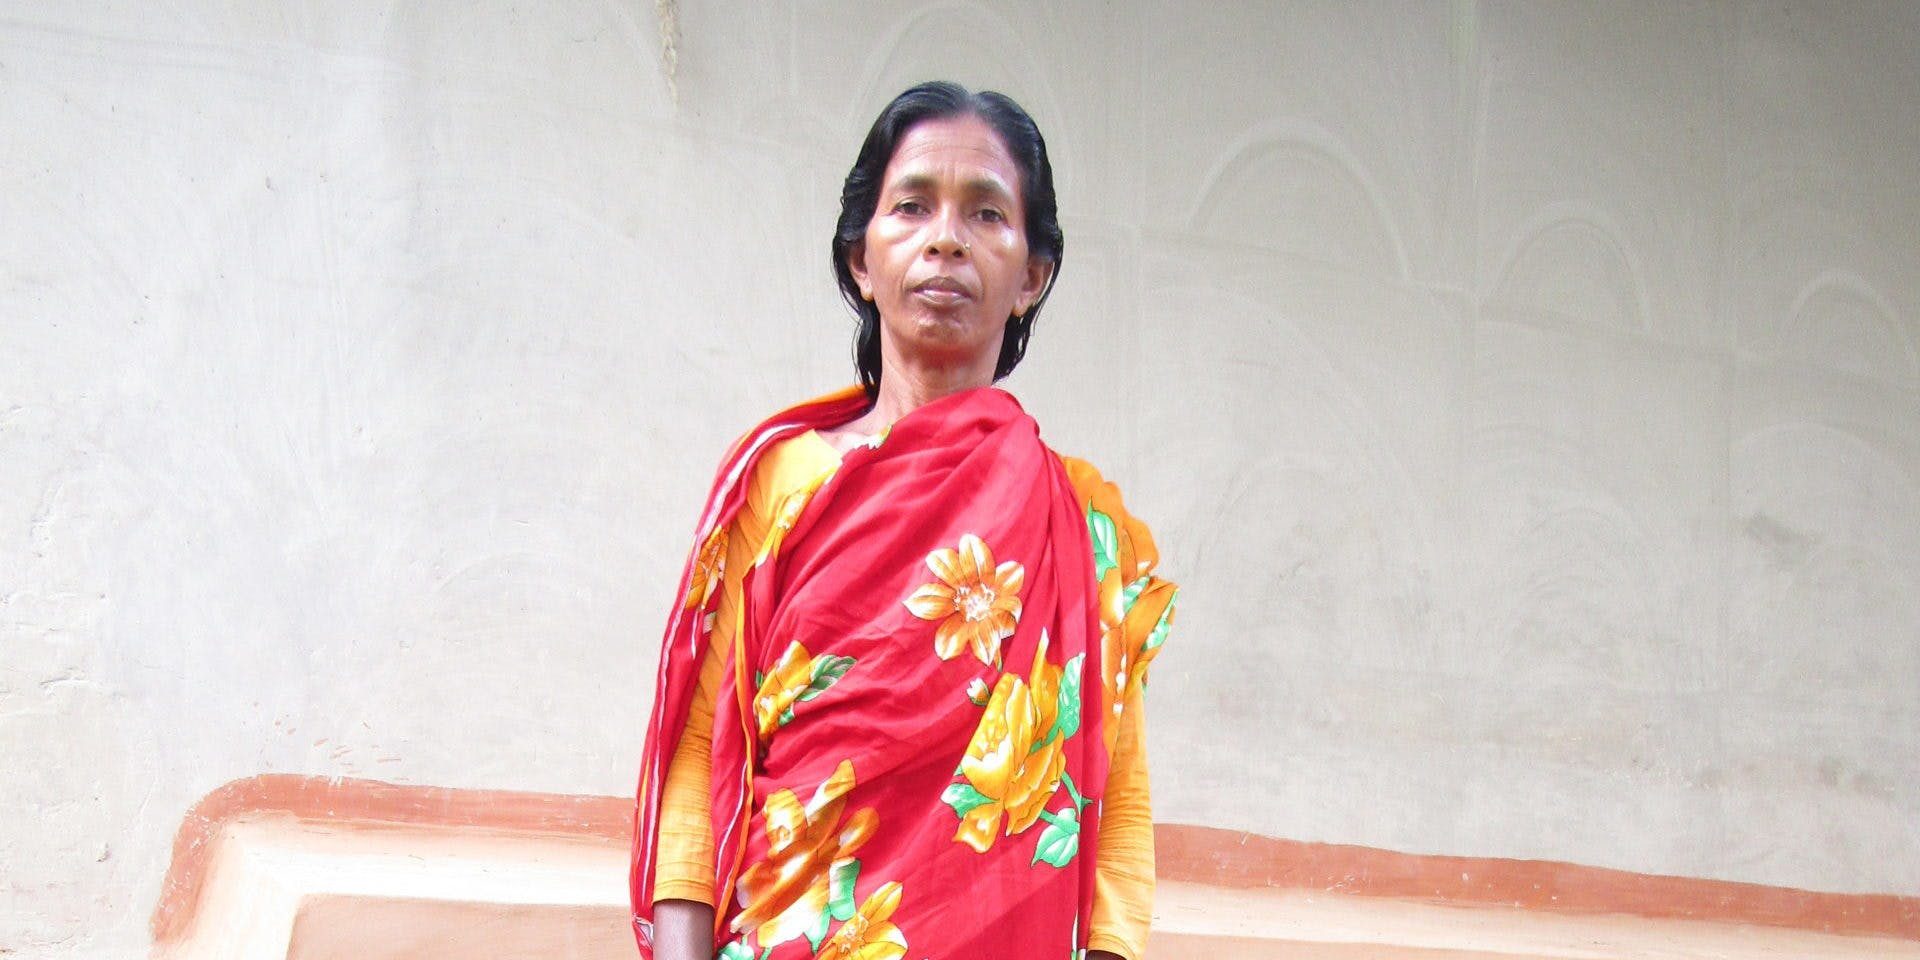 A mother standing in front of a house